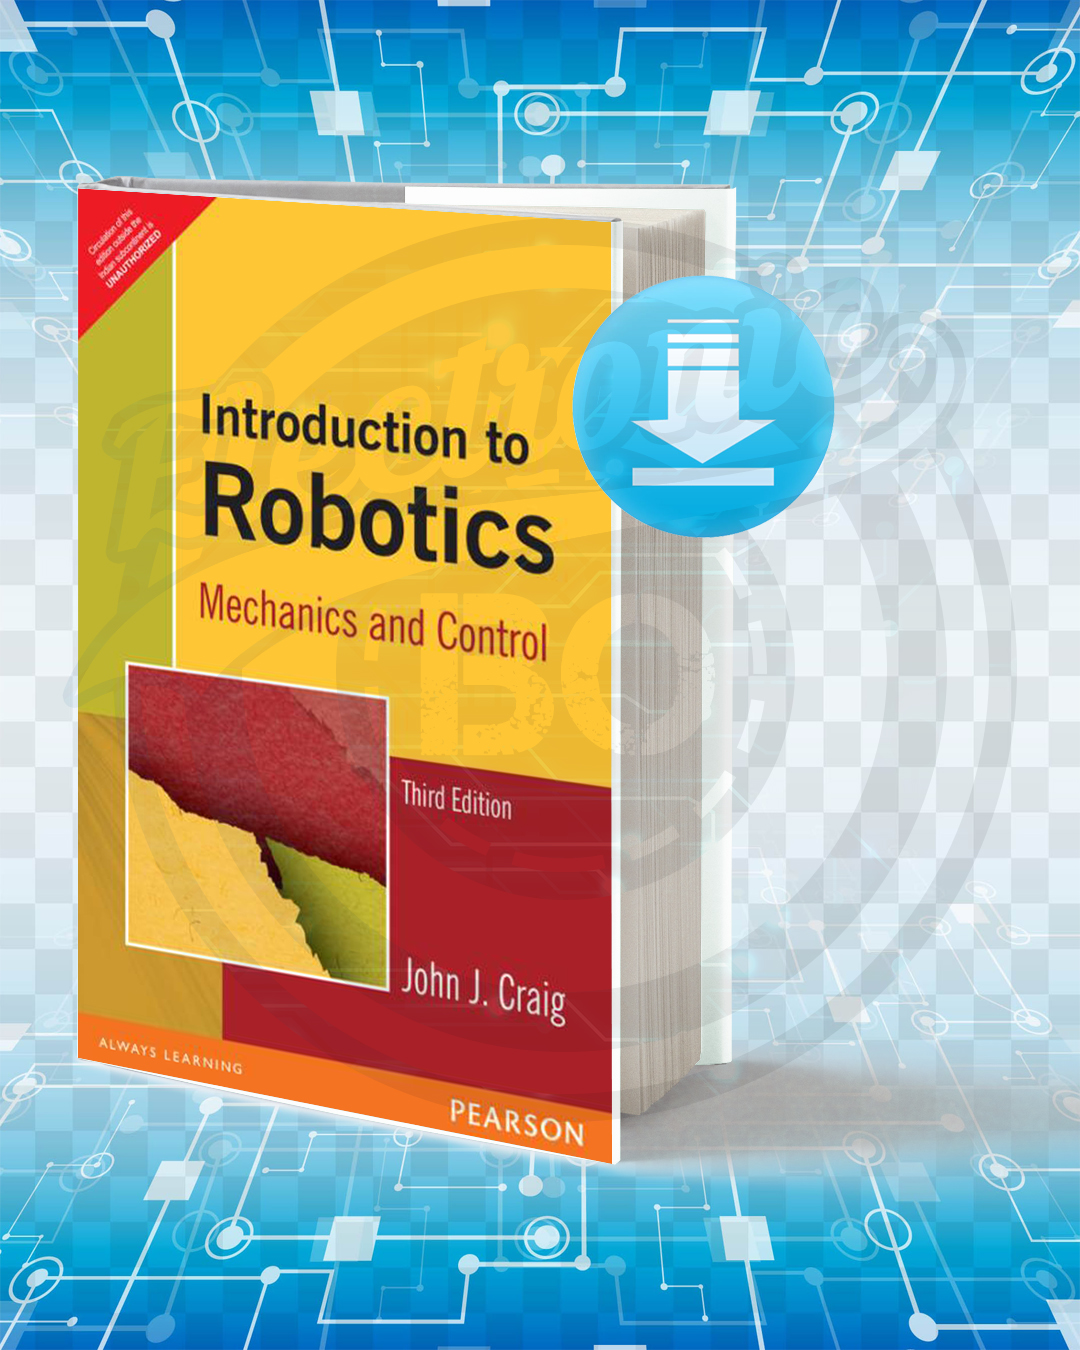 Free Book Introduction to Robotics Mechanics and Control pdf.